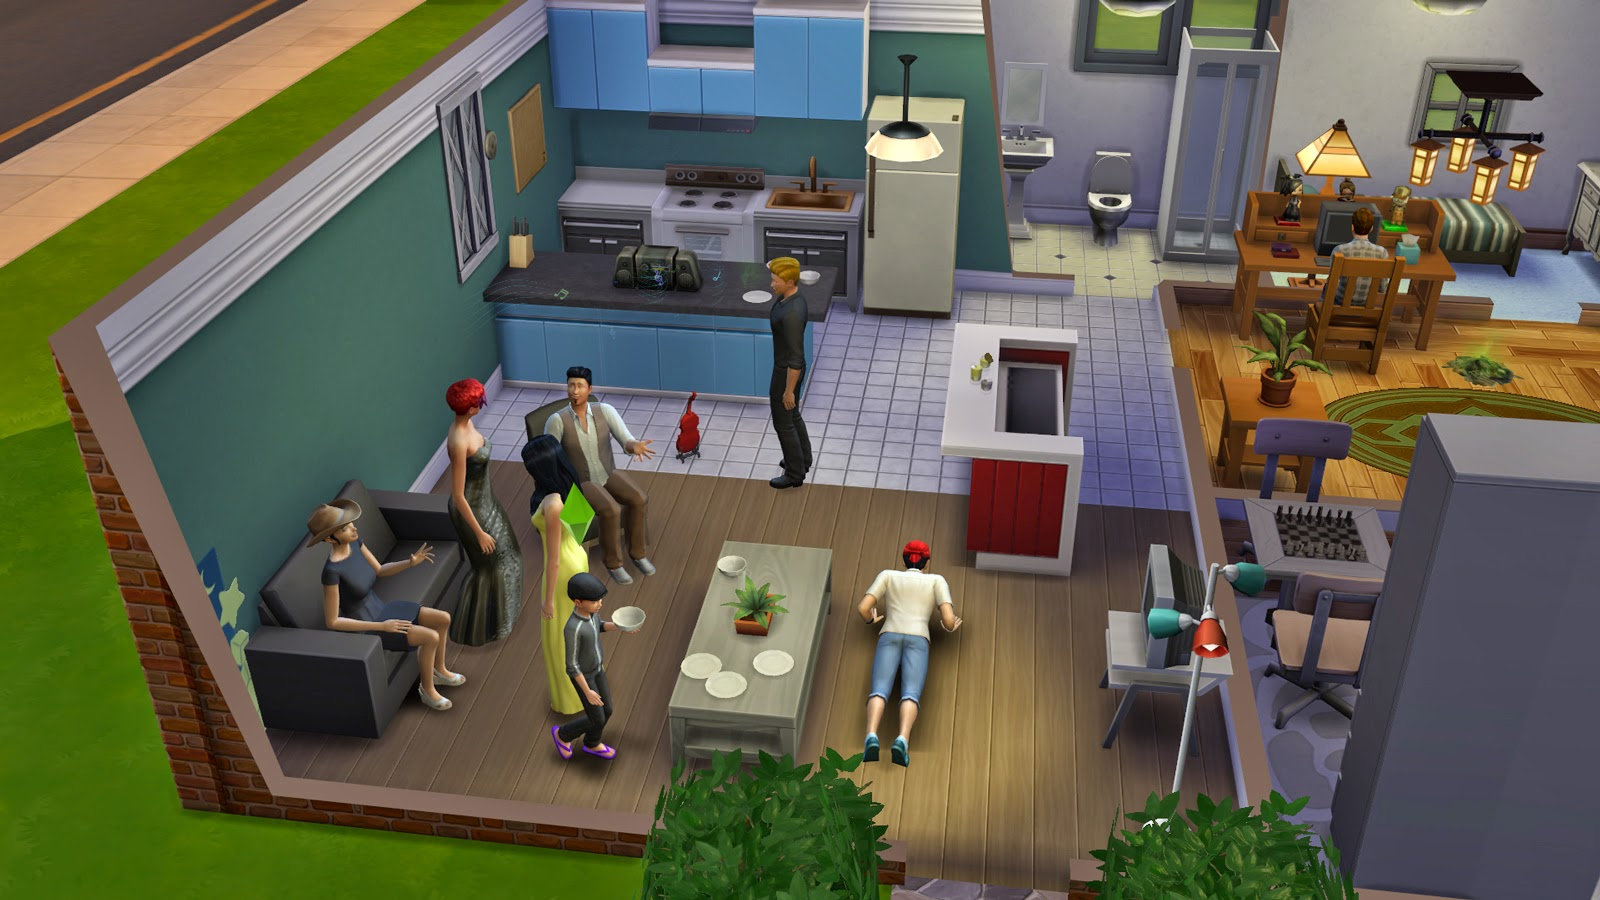 5 most disappointing games of 2014 3 the sims 4 rambling fox